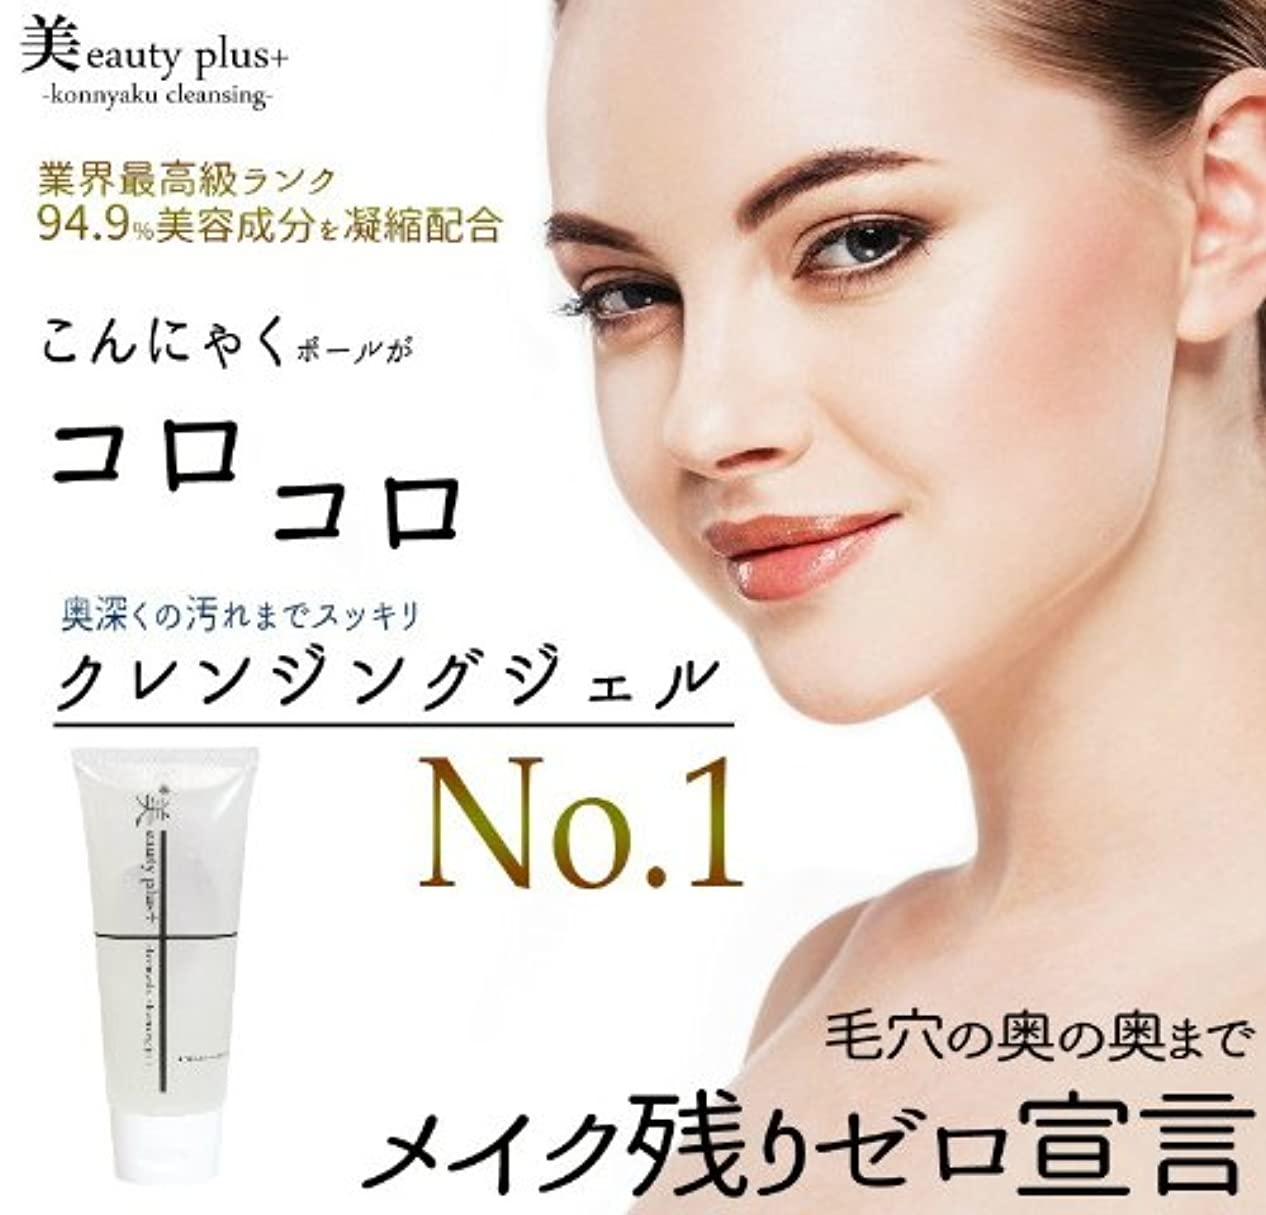 ブラウス誤稼ぐ美eauty Plus+ Konnyaku Cleansing Jel